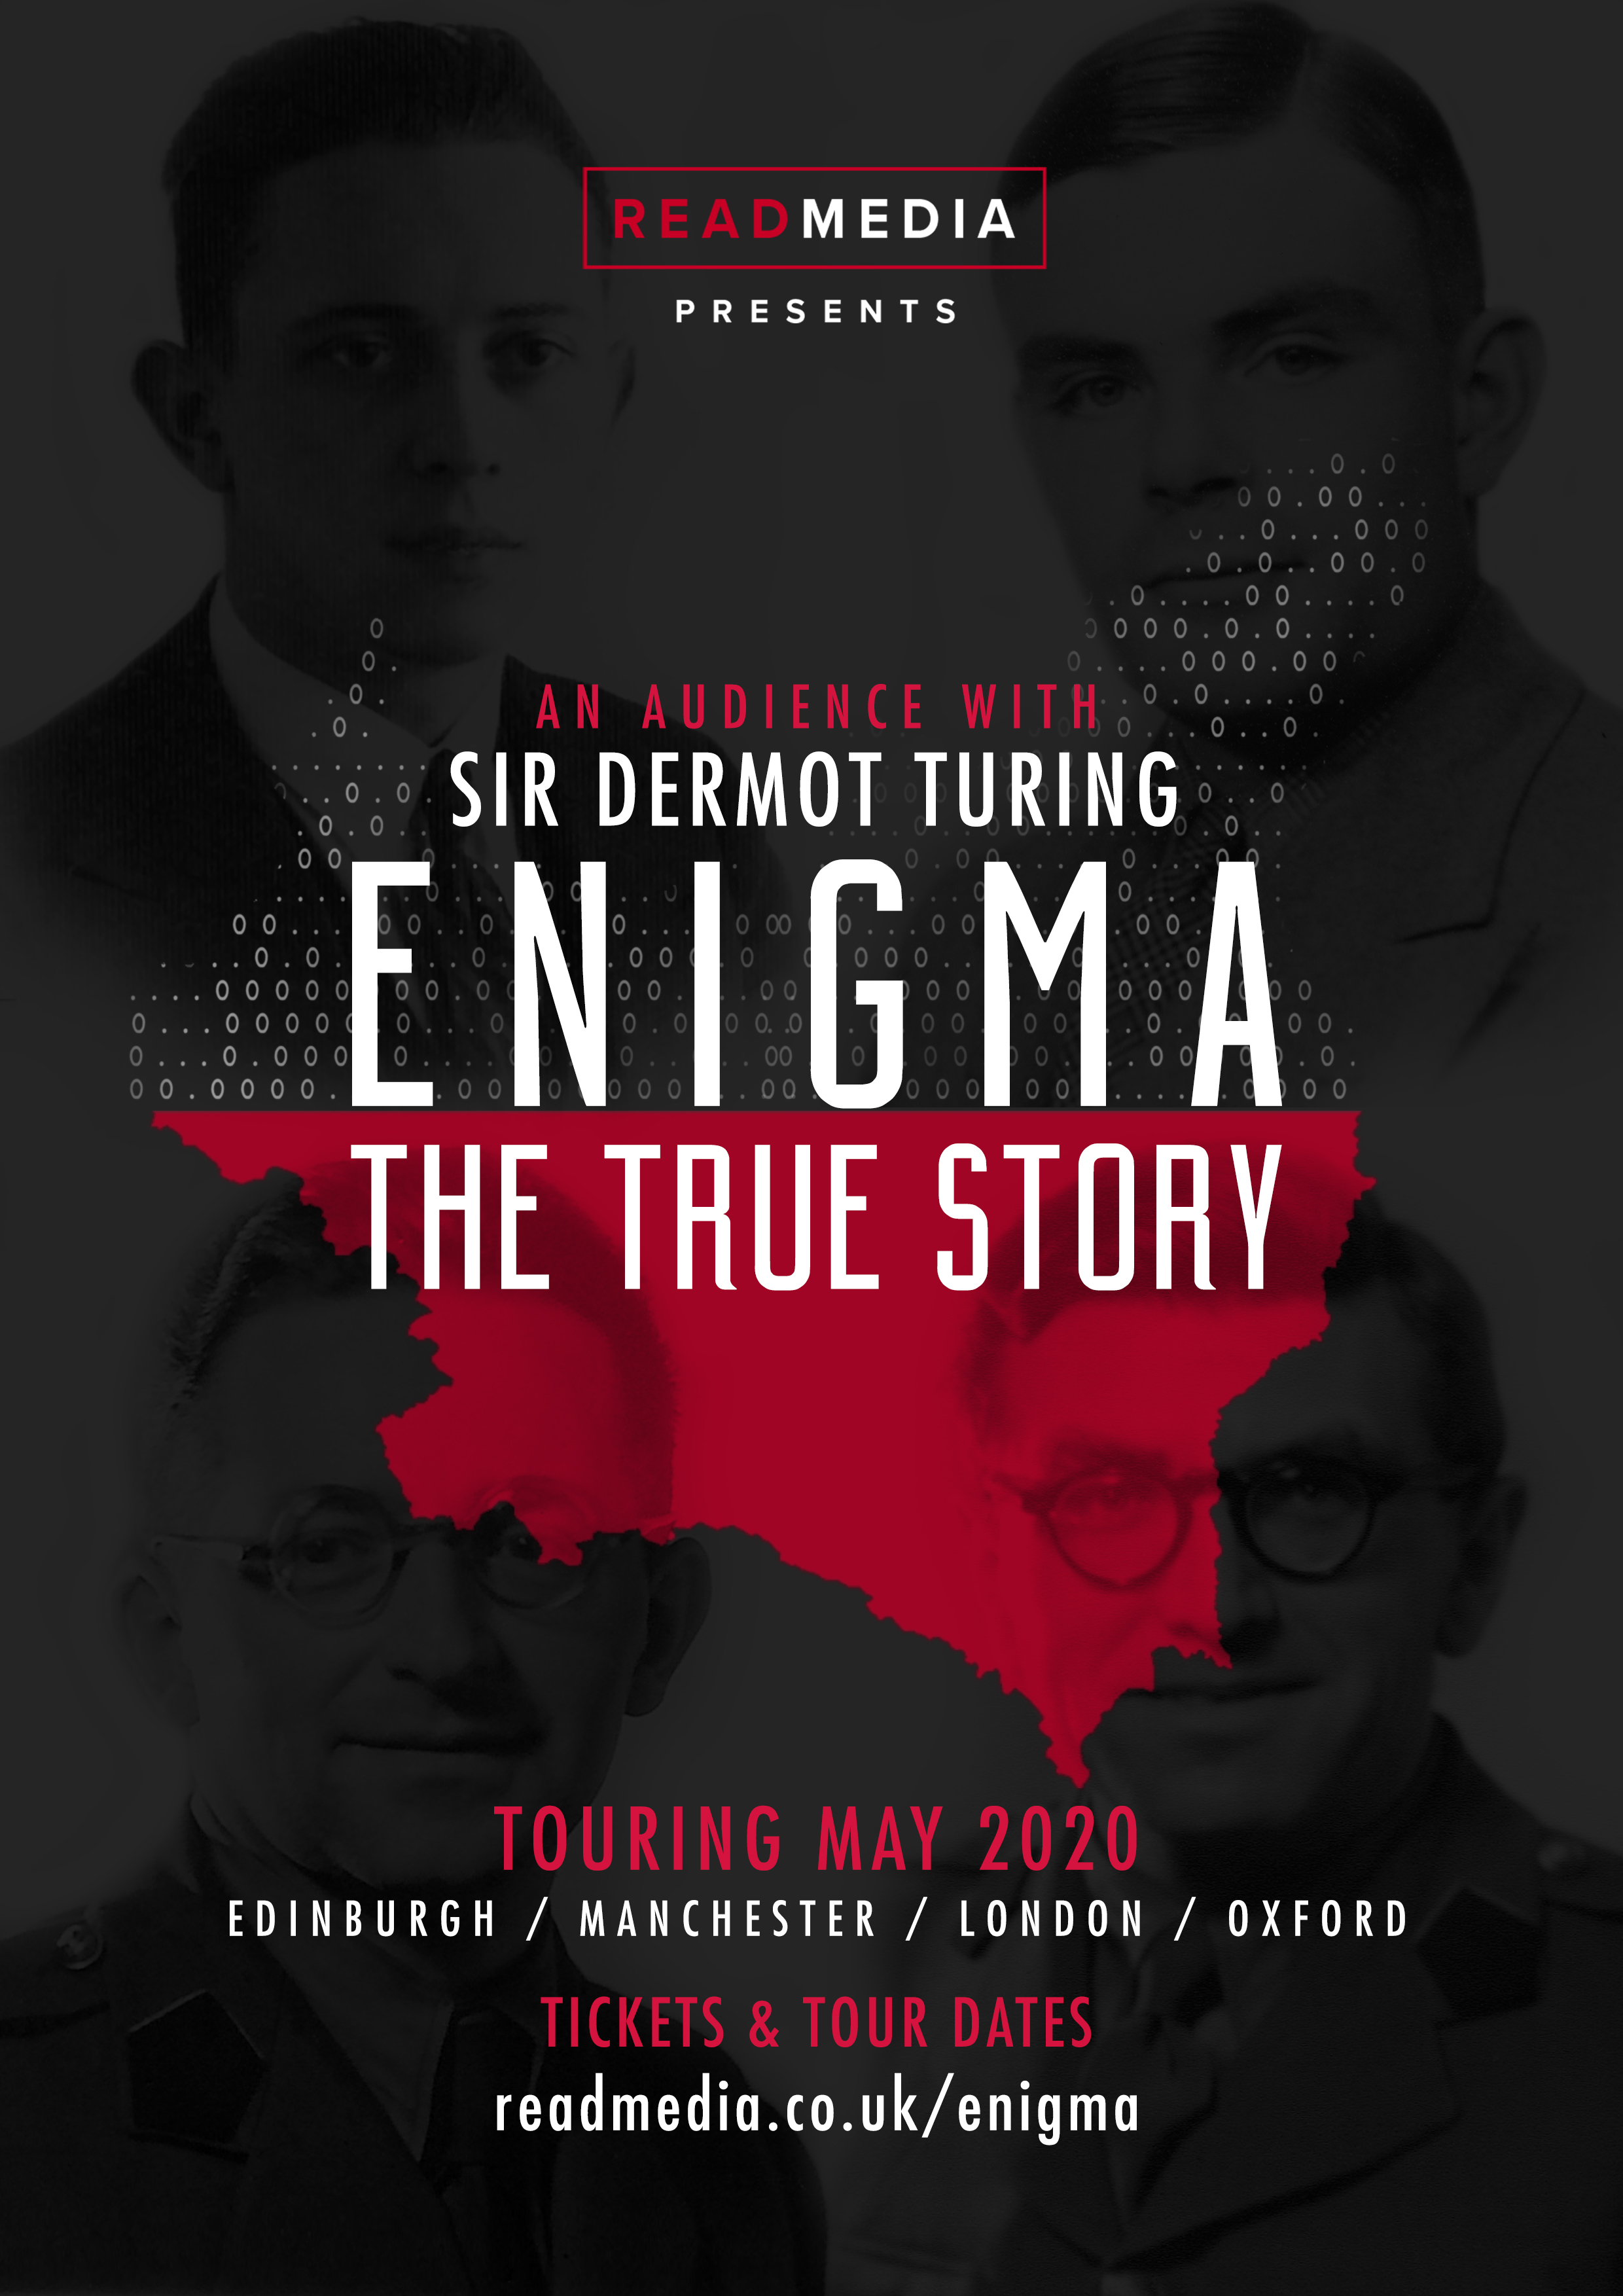 Enigma The True Story poster